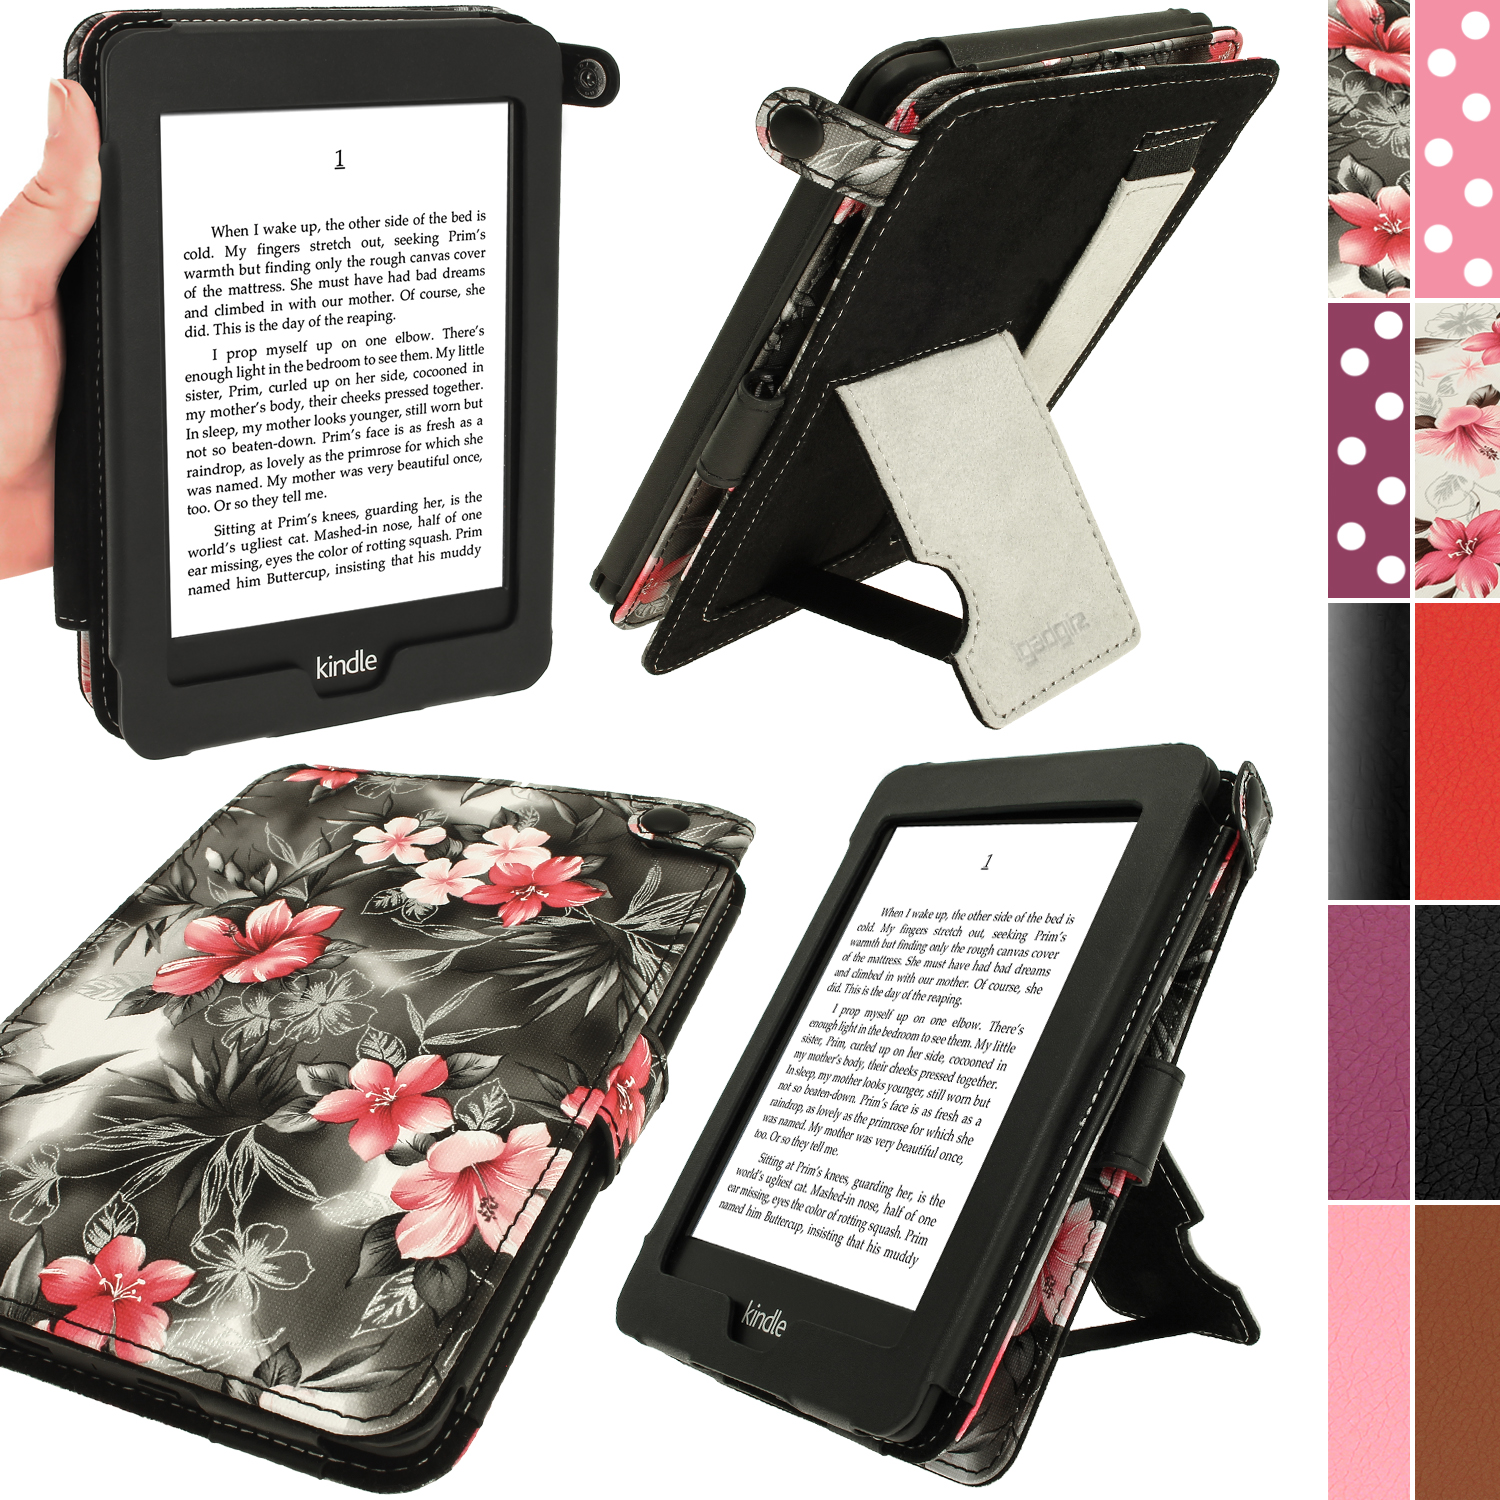 iGadgitz Floral Bi-View Textured PU Leather Case for Amazon Kindle Paperwhite 2015 2014 2013 2012 Sleep/Wake Hand Strap